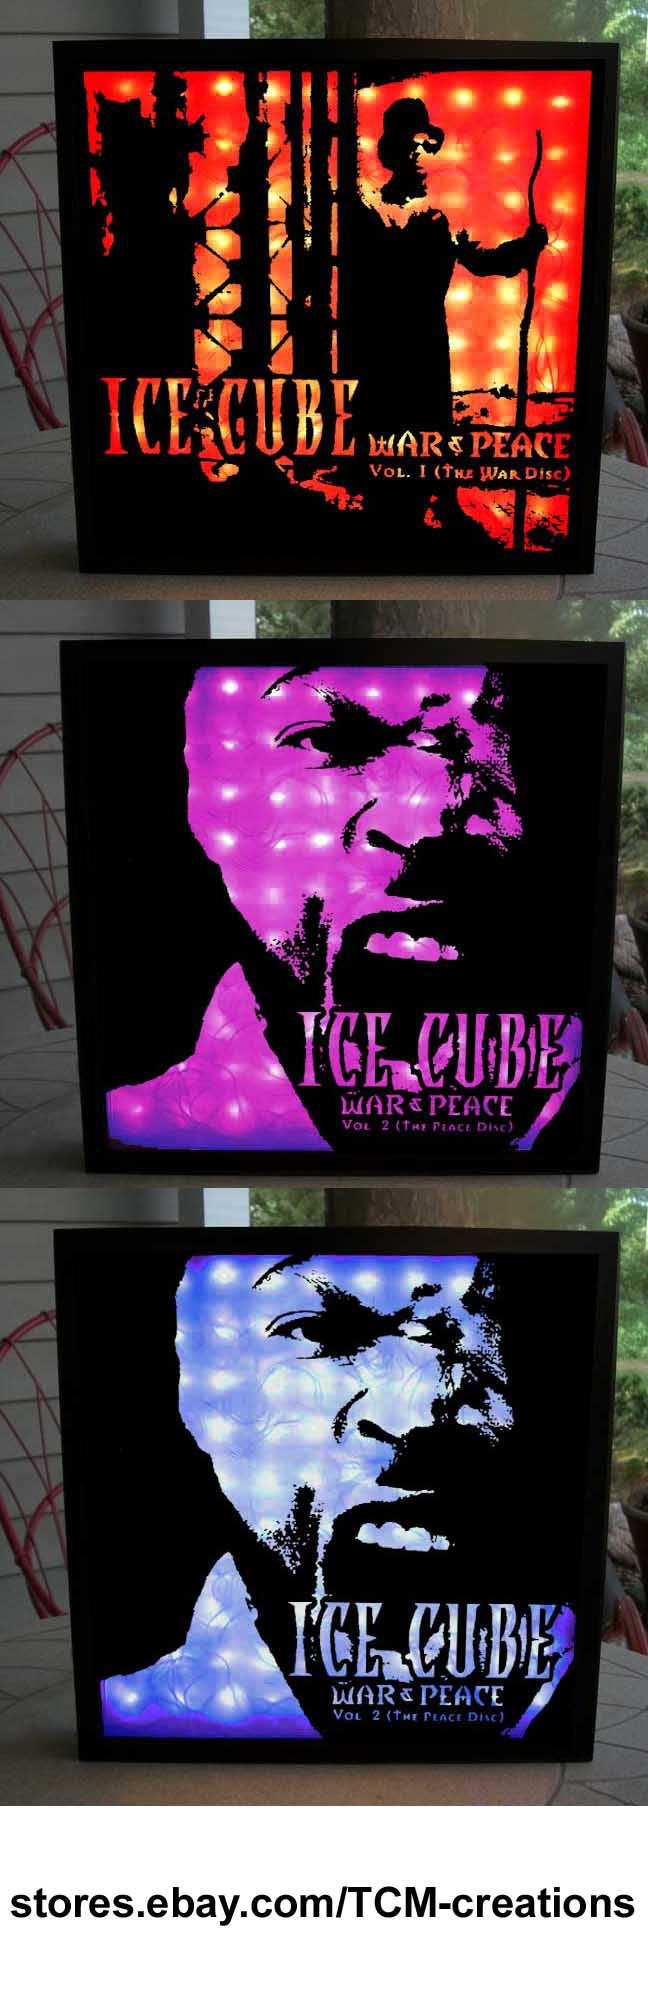 Ice cube shadow boxes with led lighting amerikkkas most wanted ice cube shadow boxes with led lighting amerikkkas most wanted death certificate the 1betcityfo Choice Image